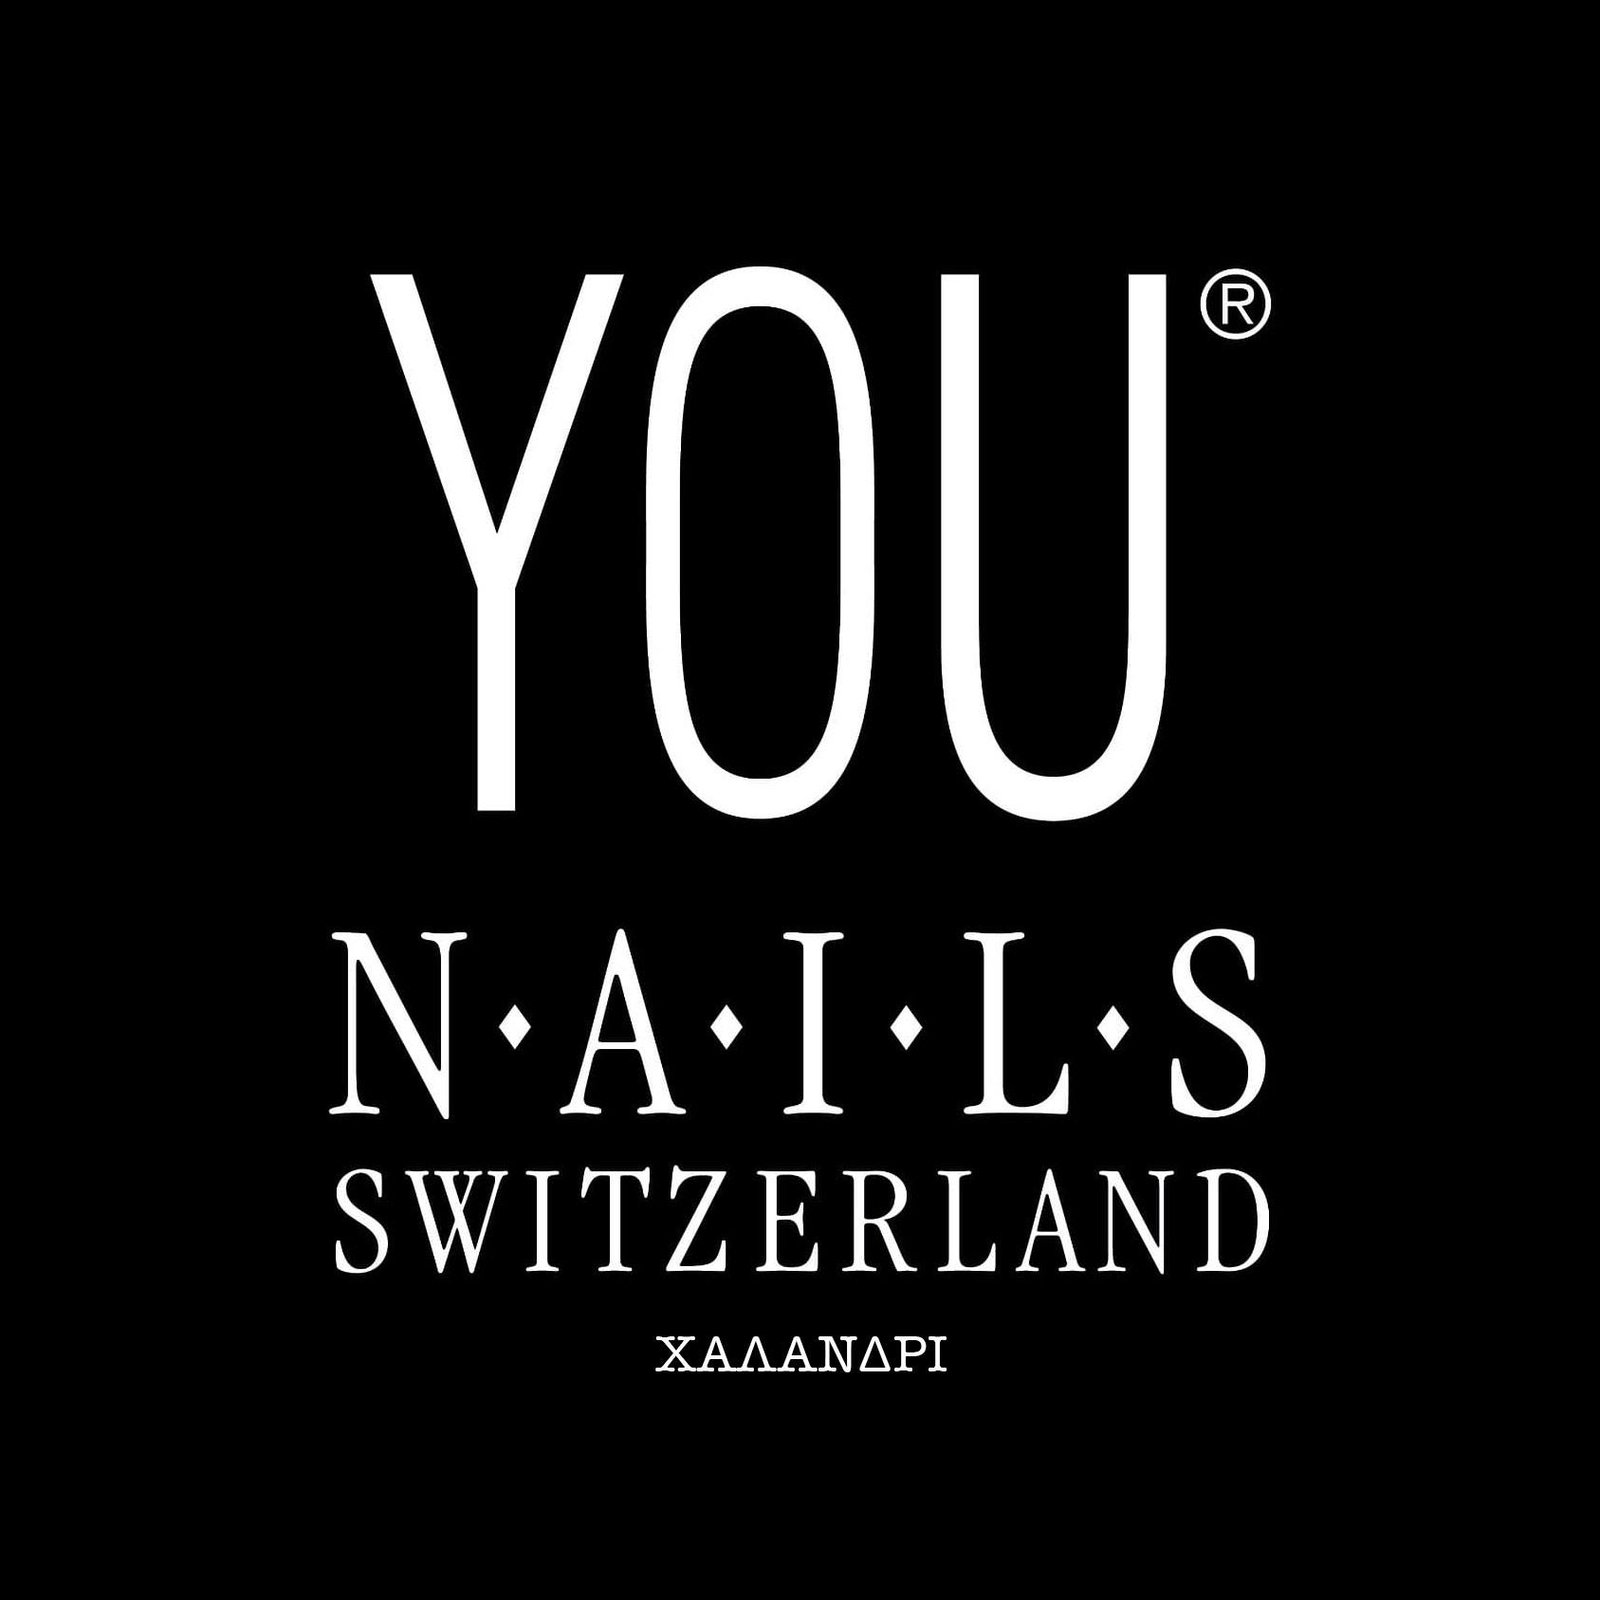 You Nails Χαλάνδρι